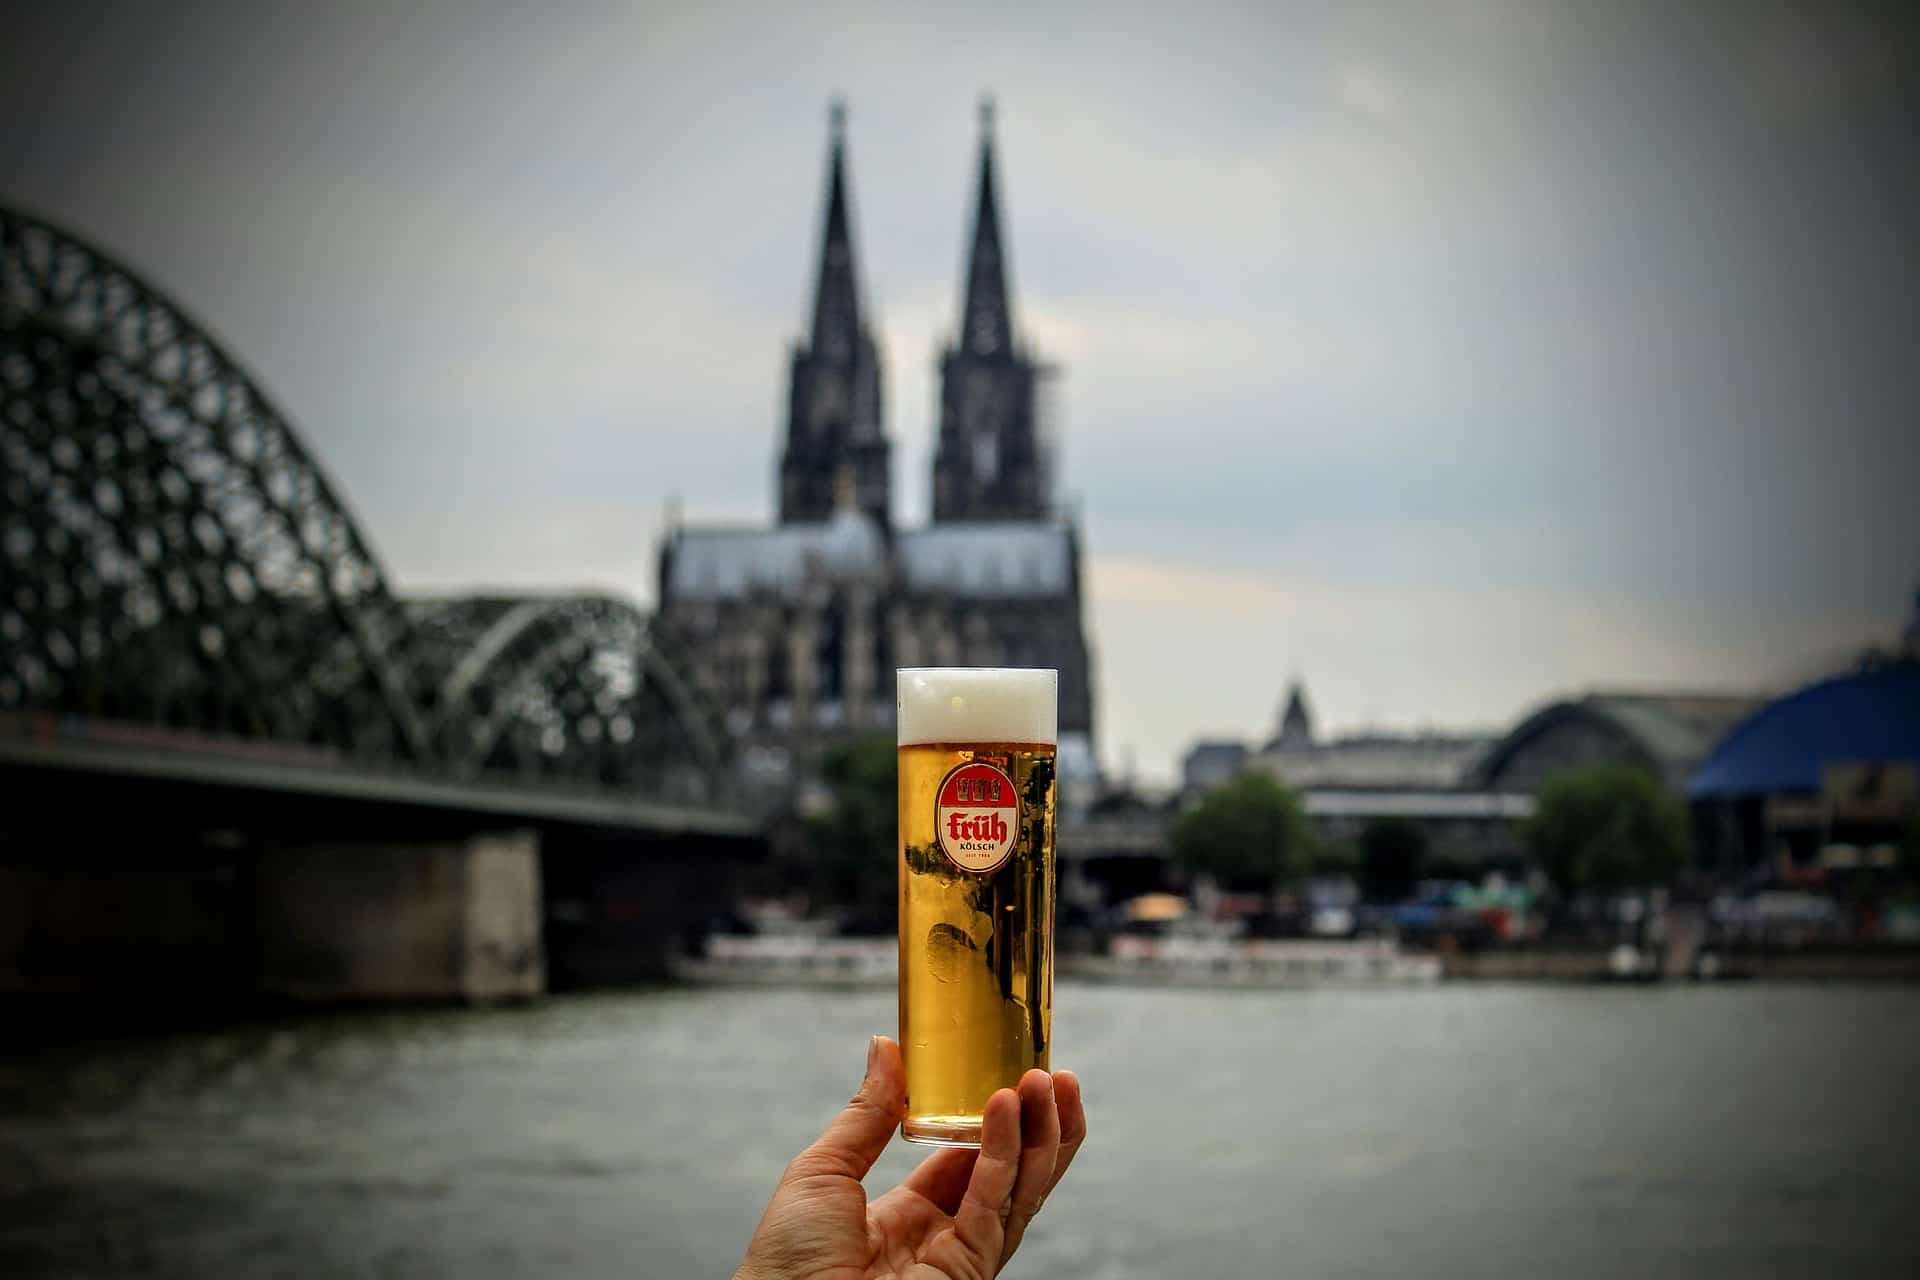 Germany - Cologne - Kolsch - Hohezollern Bridge and Rhine